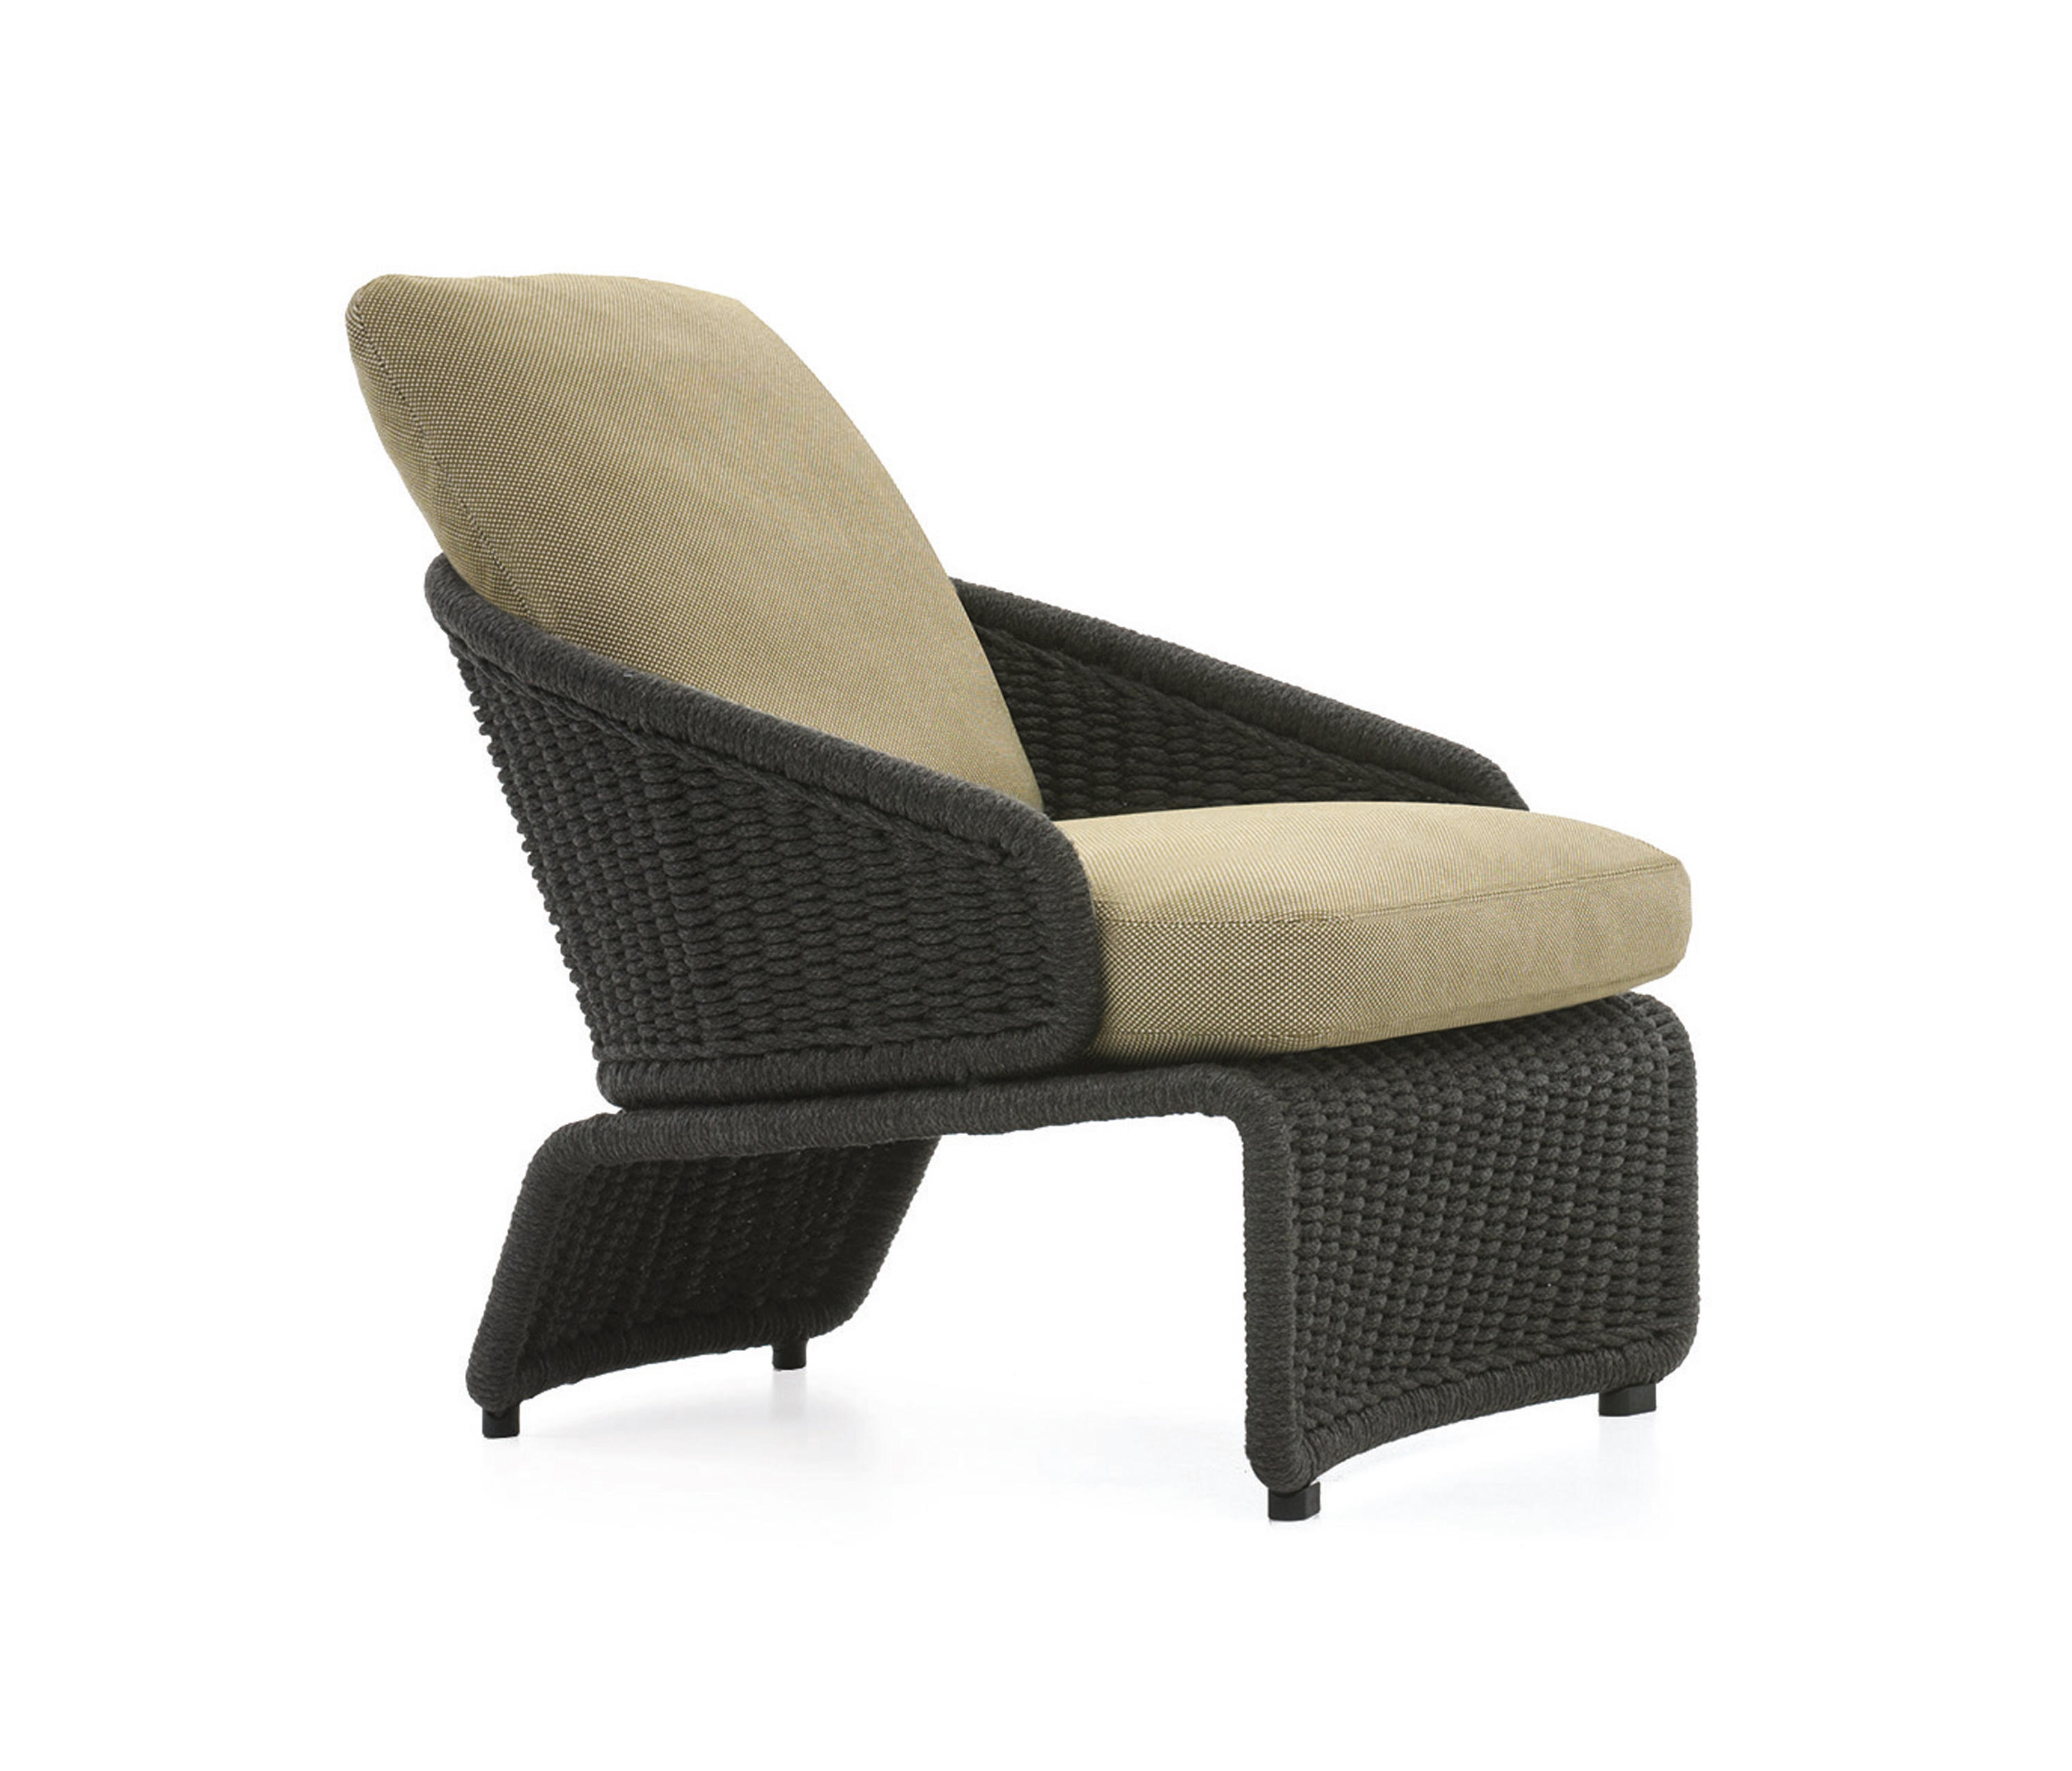 HALLEY OUTDOOR ARMCHAIR - Armchairs from Minotti | Architonic